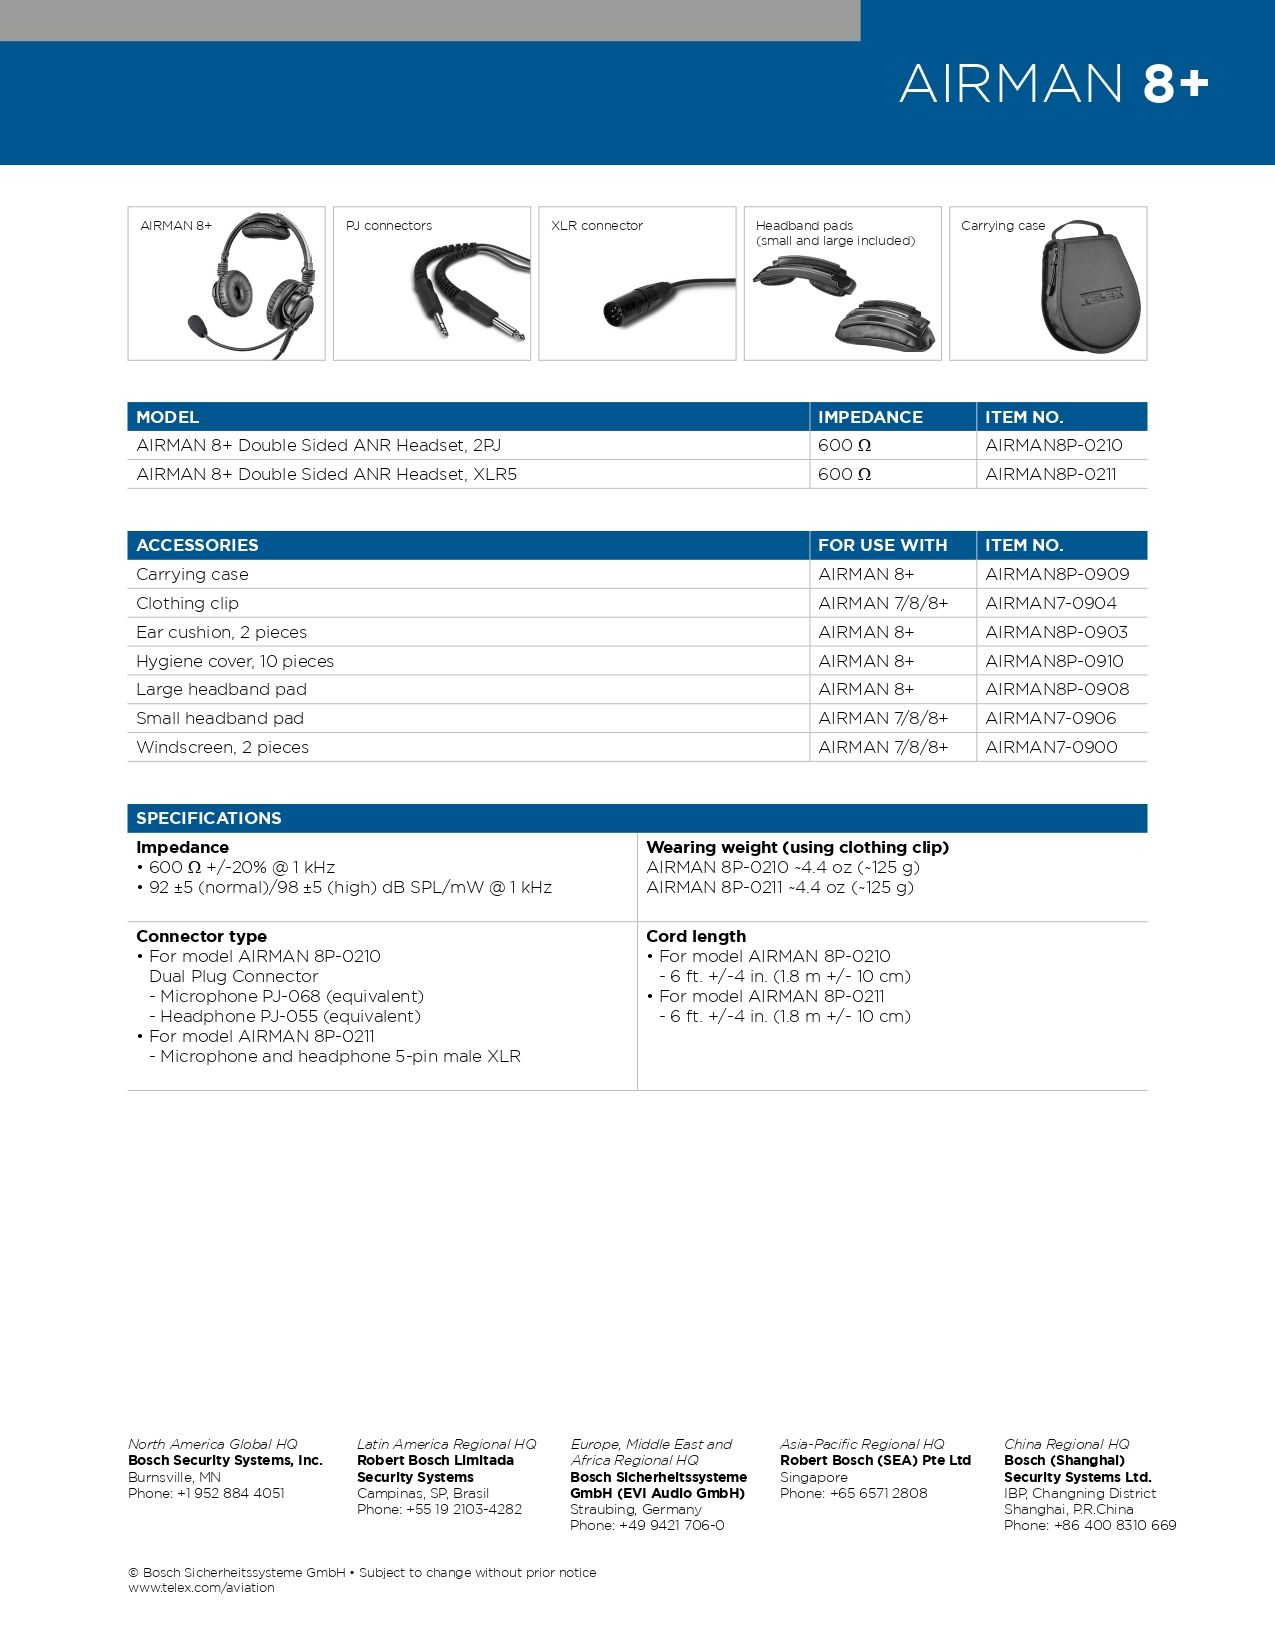 AIRMAN 8+ SPECS BUCKERBOOK